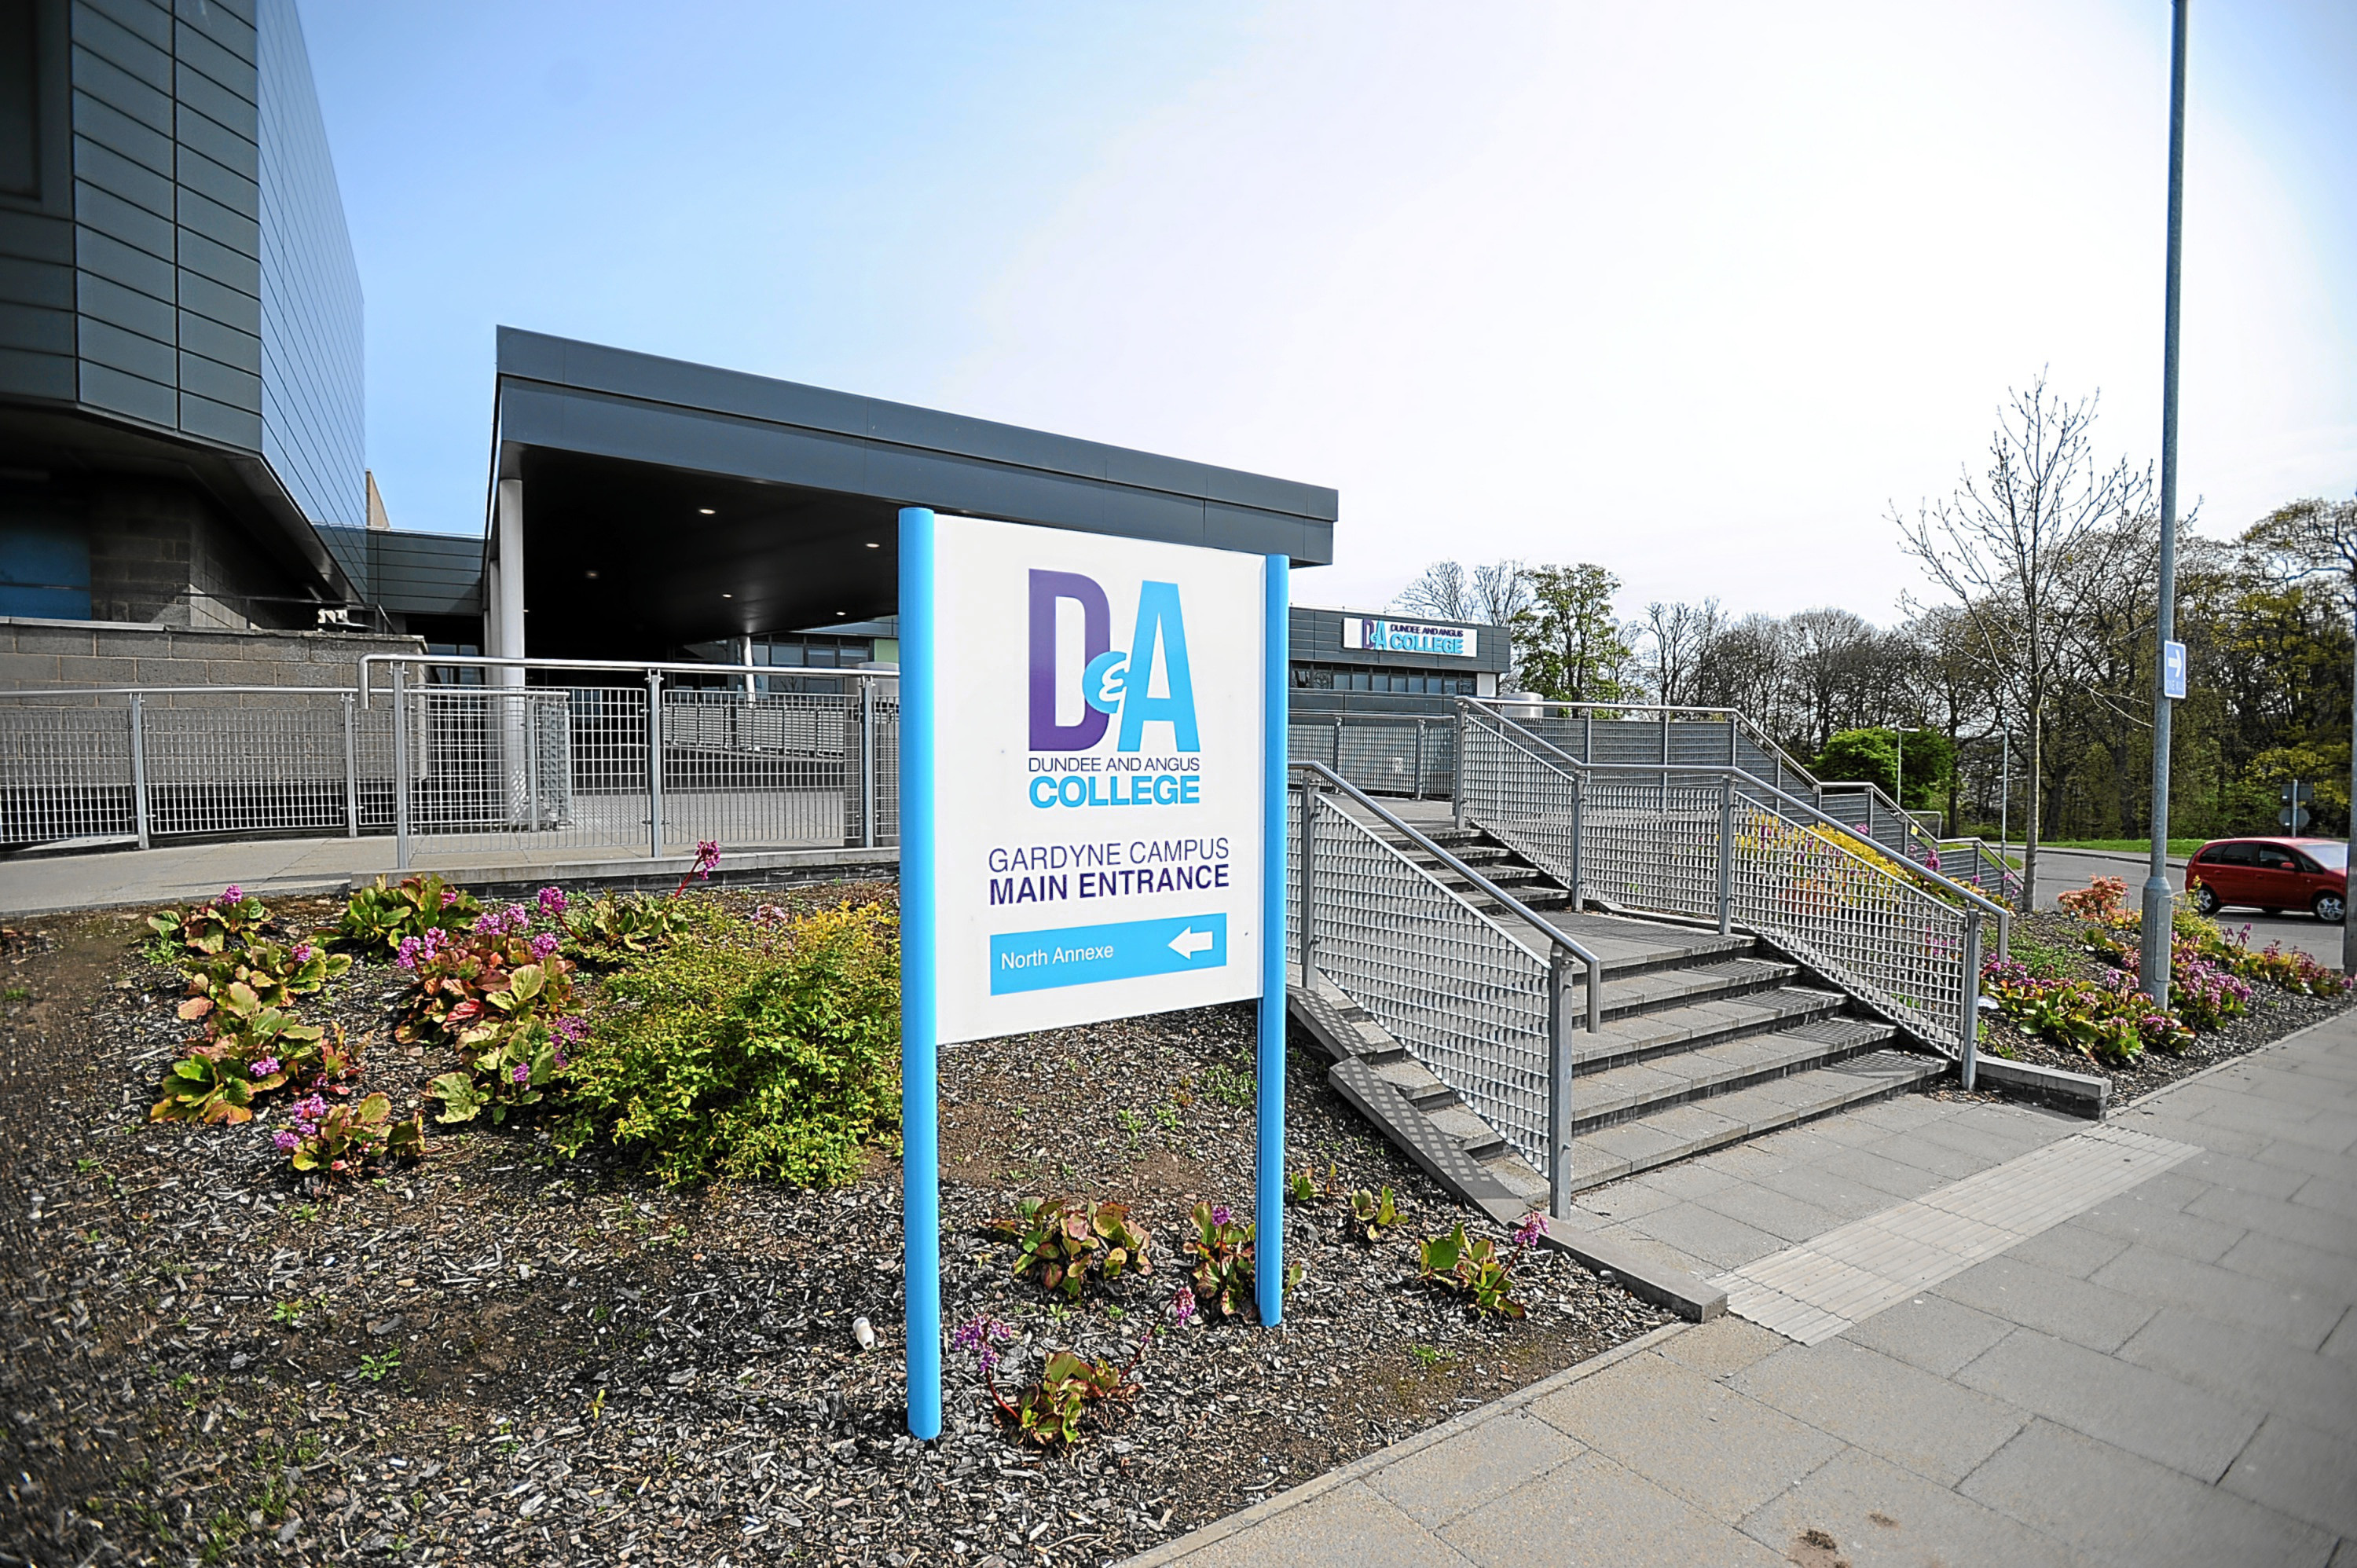 The D&A College apprenticeships will be available to school pupils in S4 or above. .